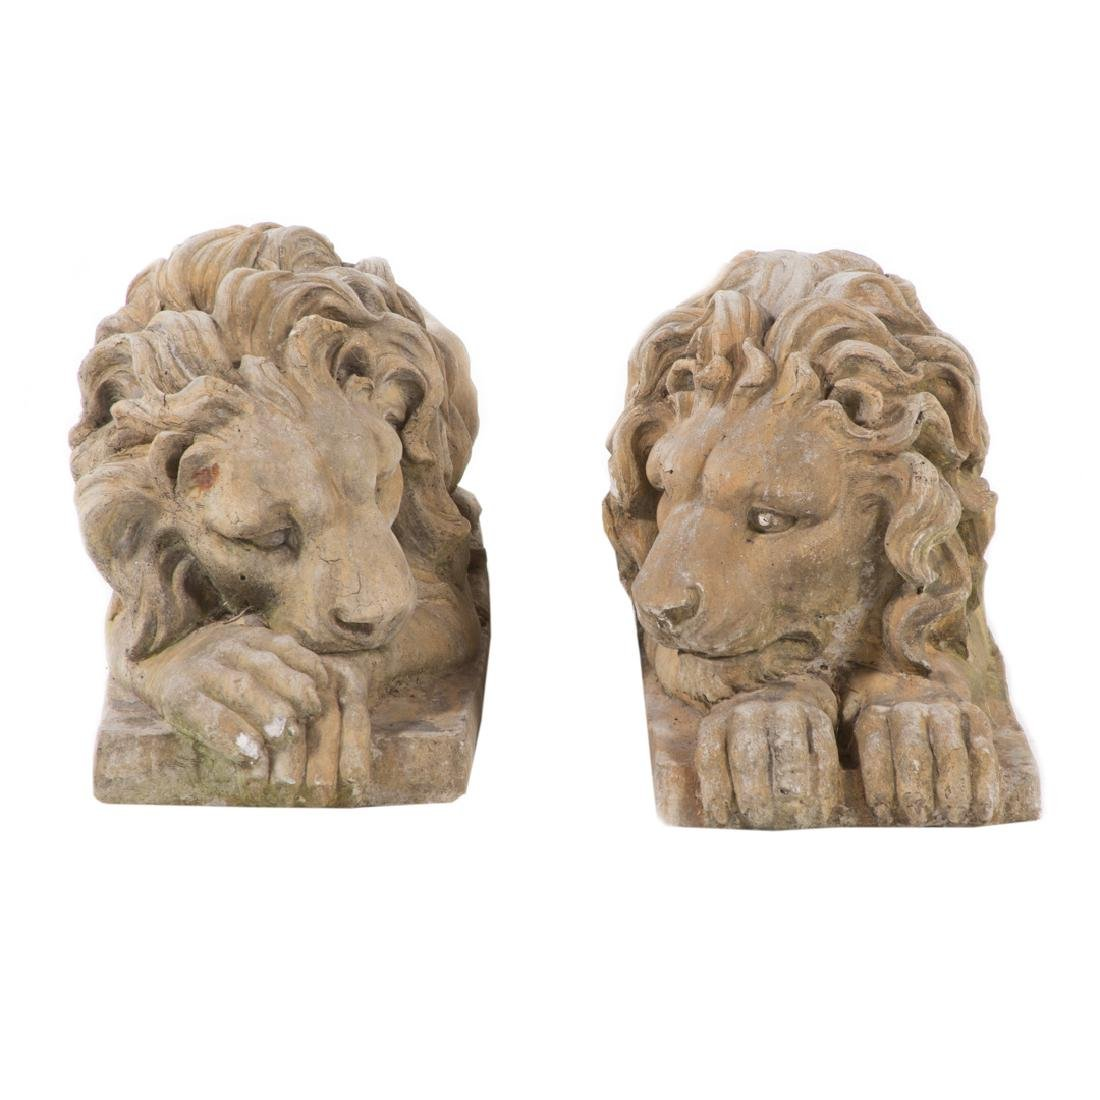 Pair of poured stone lions